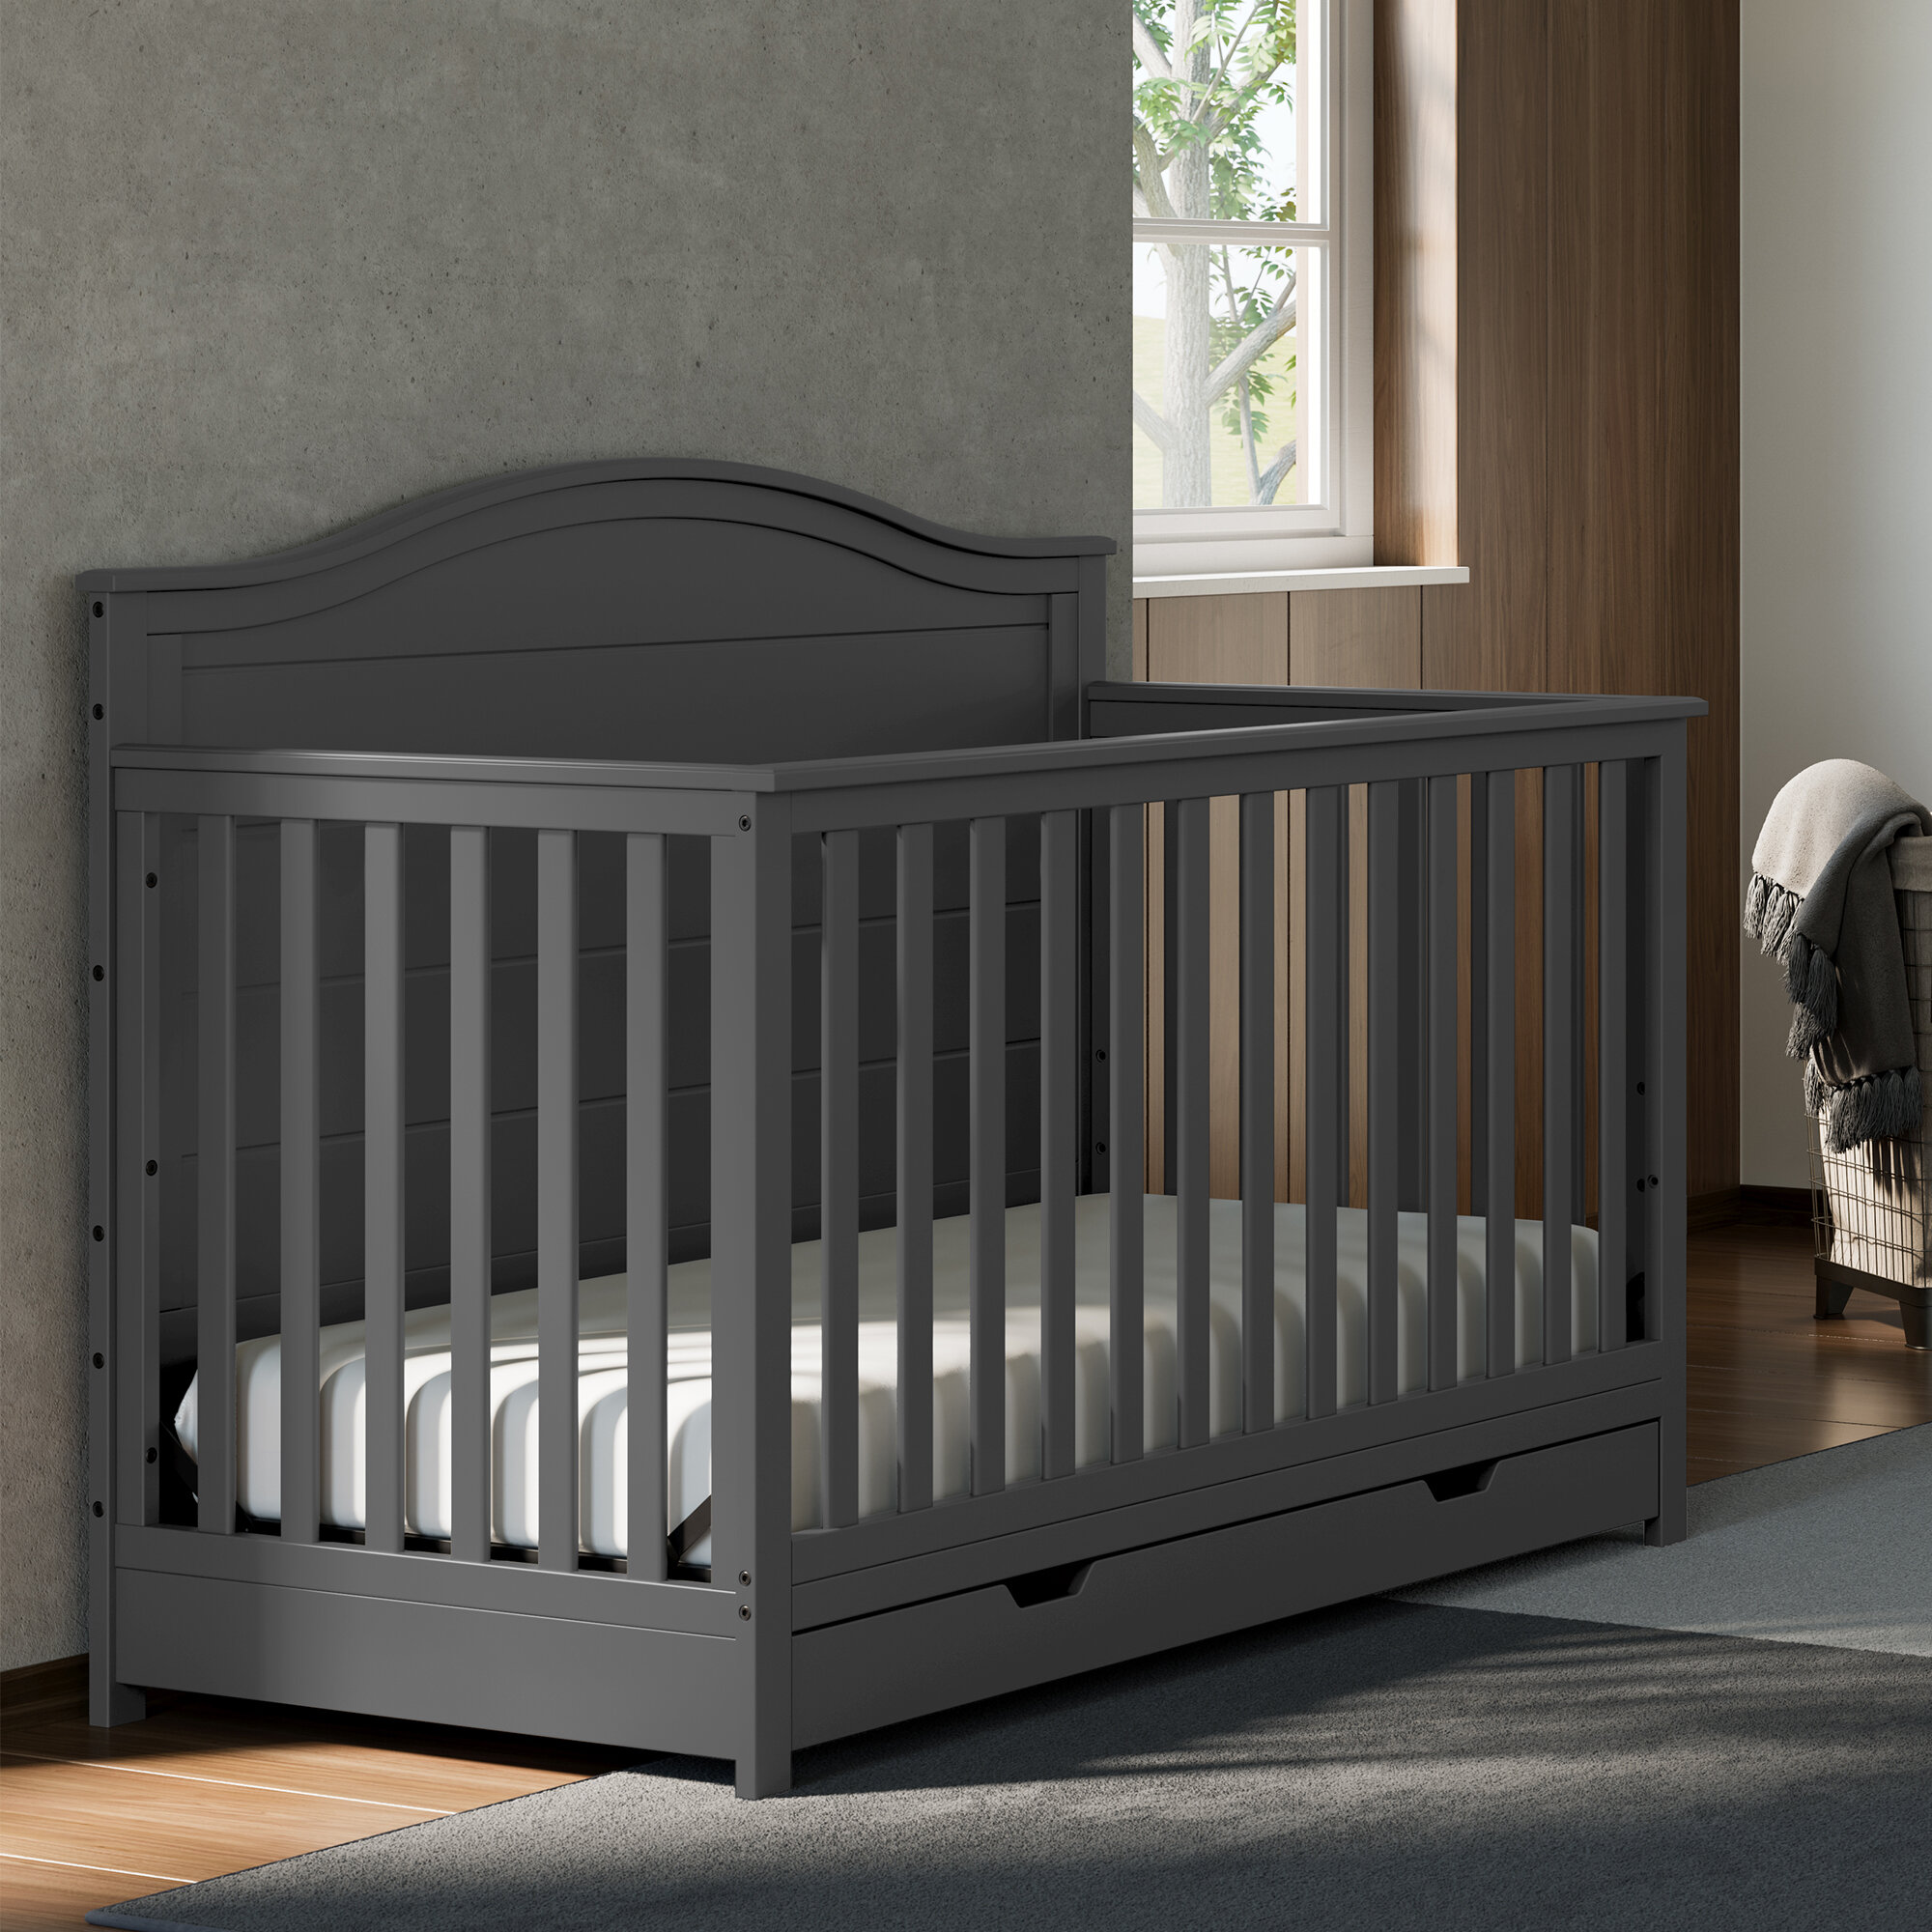 Storkcraft Moss 4 In 1 Convertible Crib With Storage Reviews Wayfair